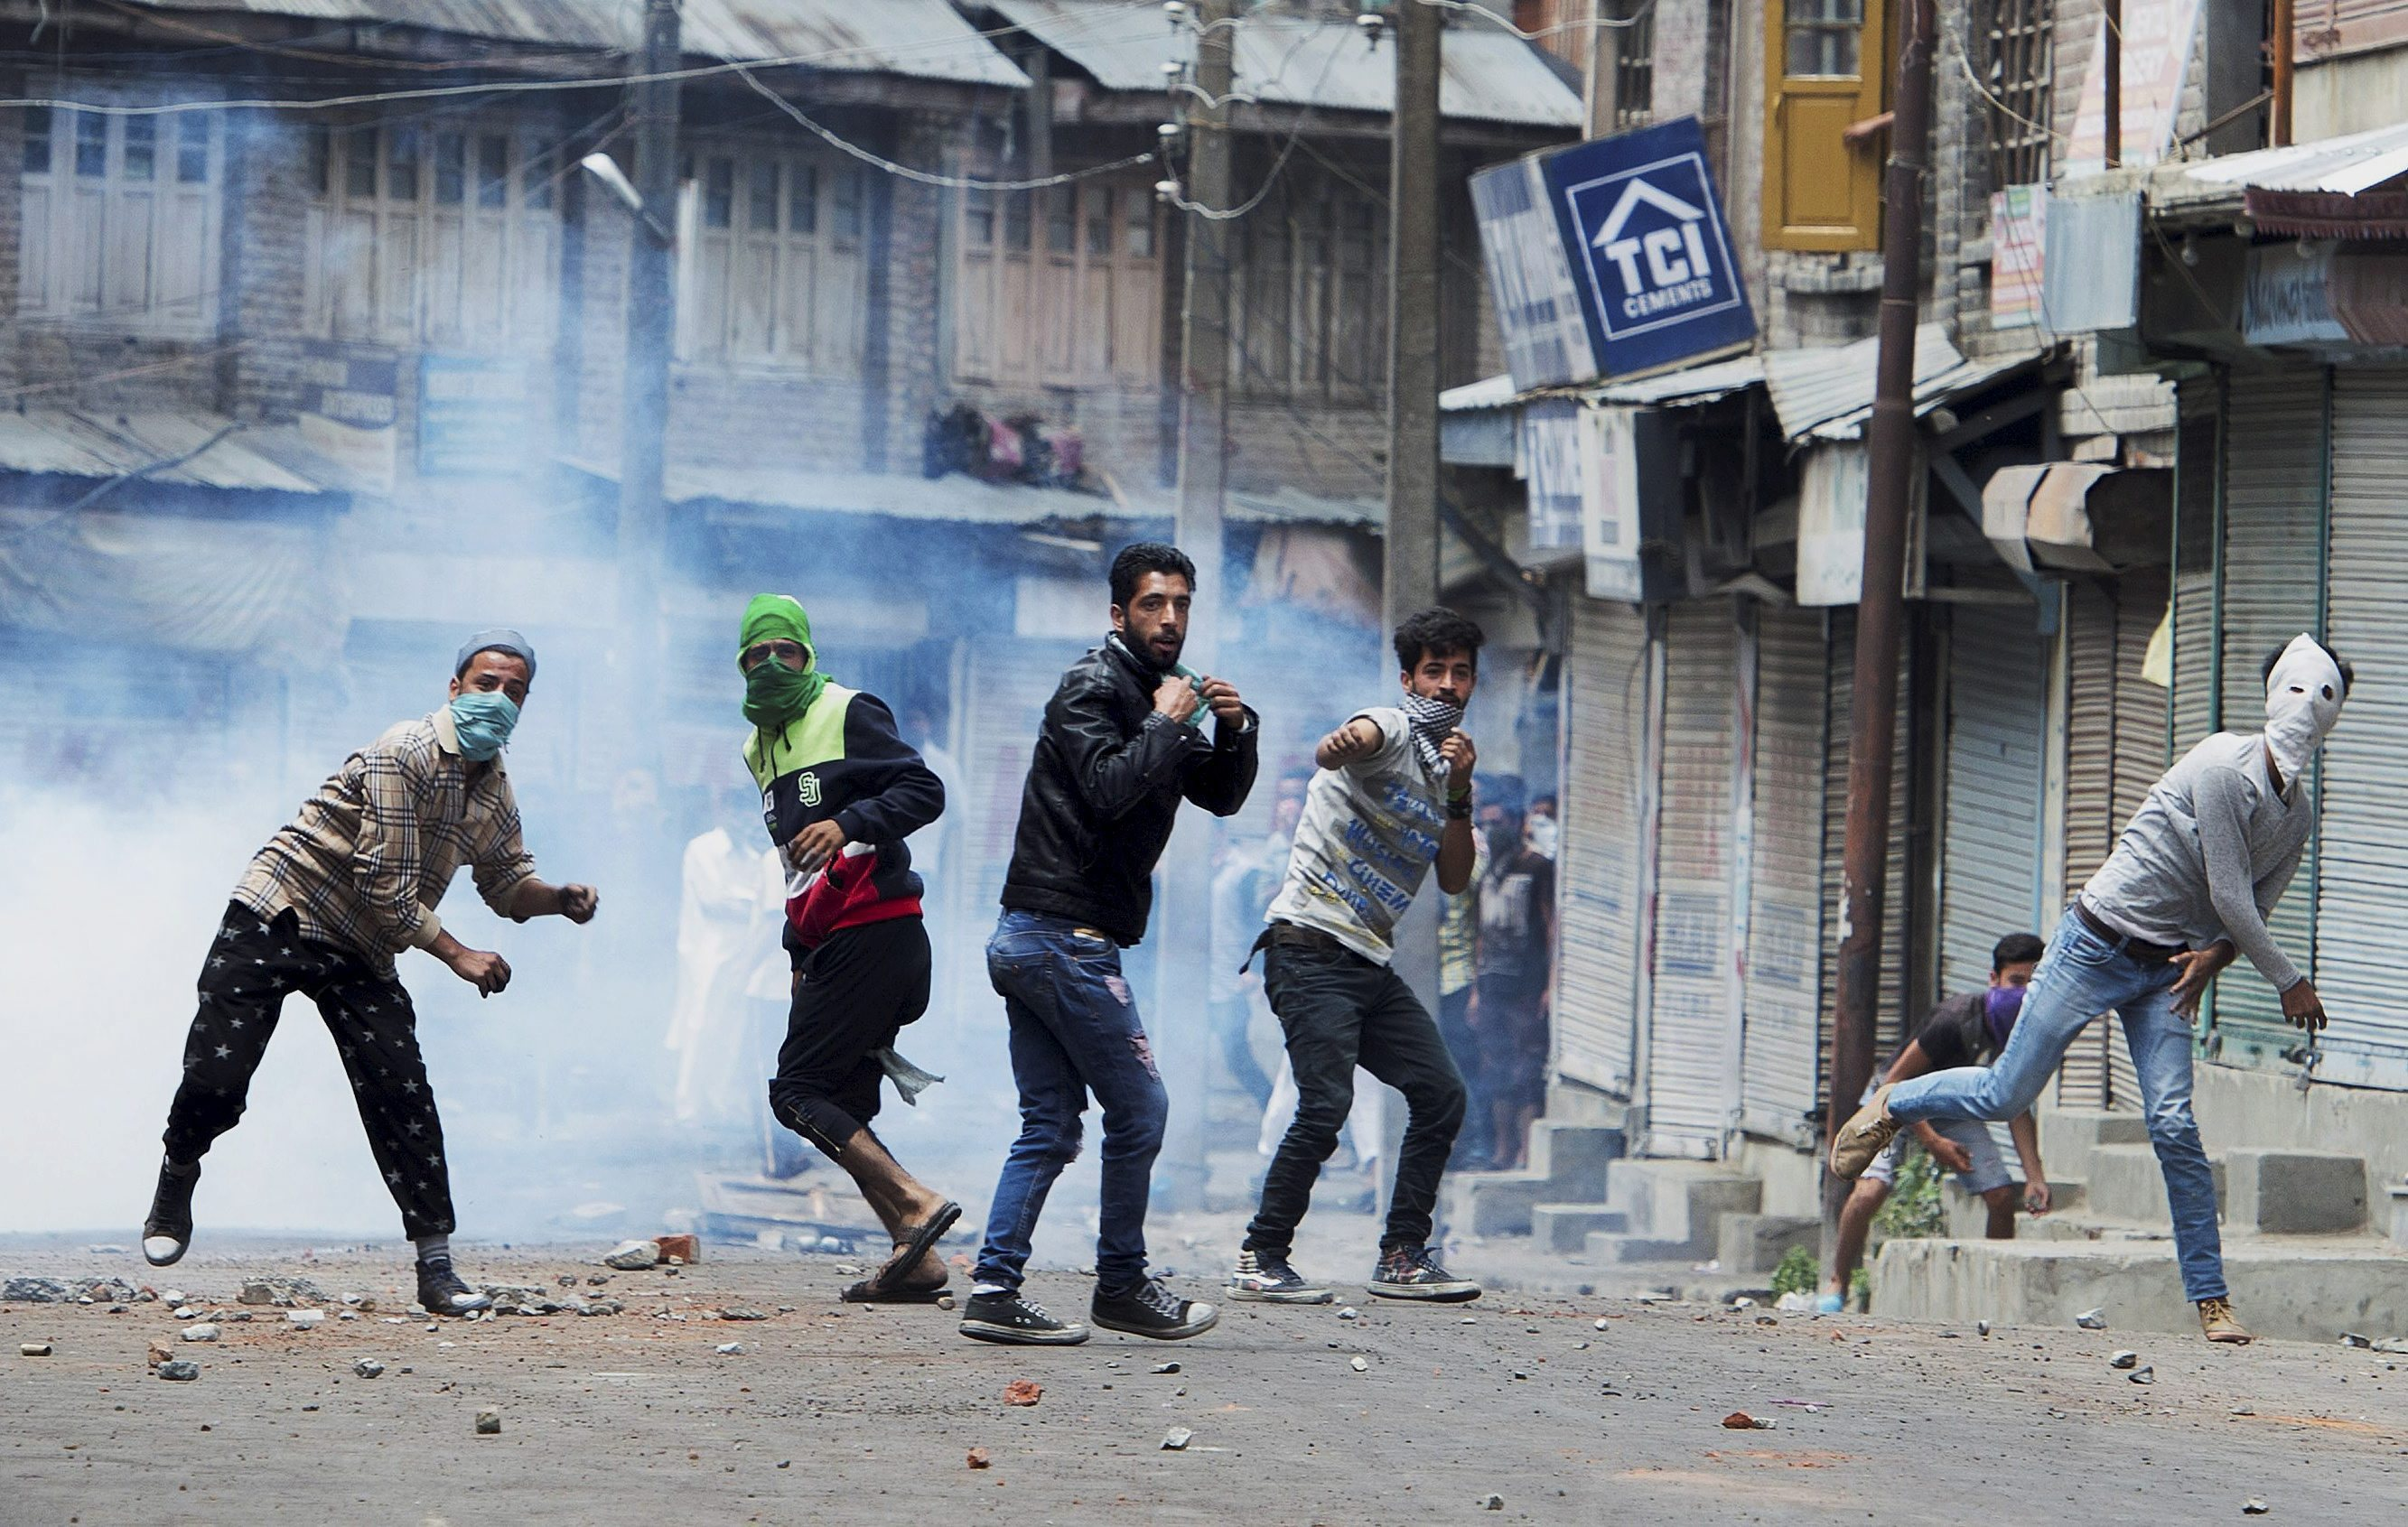 The End of Burhan Wani: 'Capture' Rather Than 'Kill' is Better for National Security